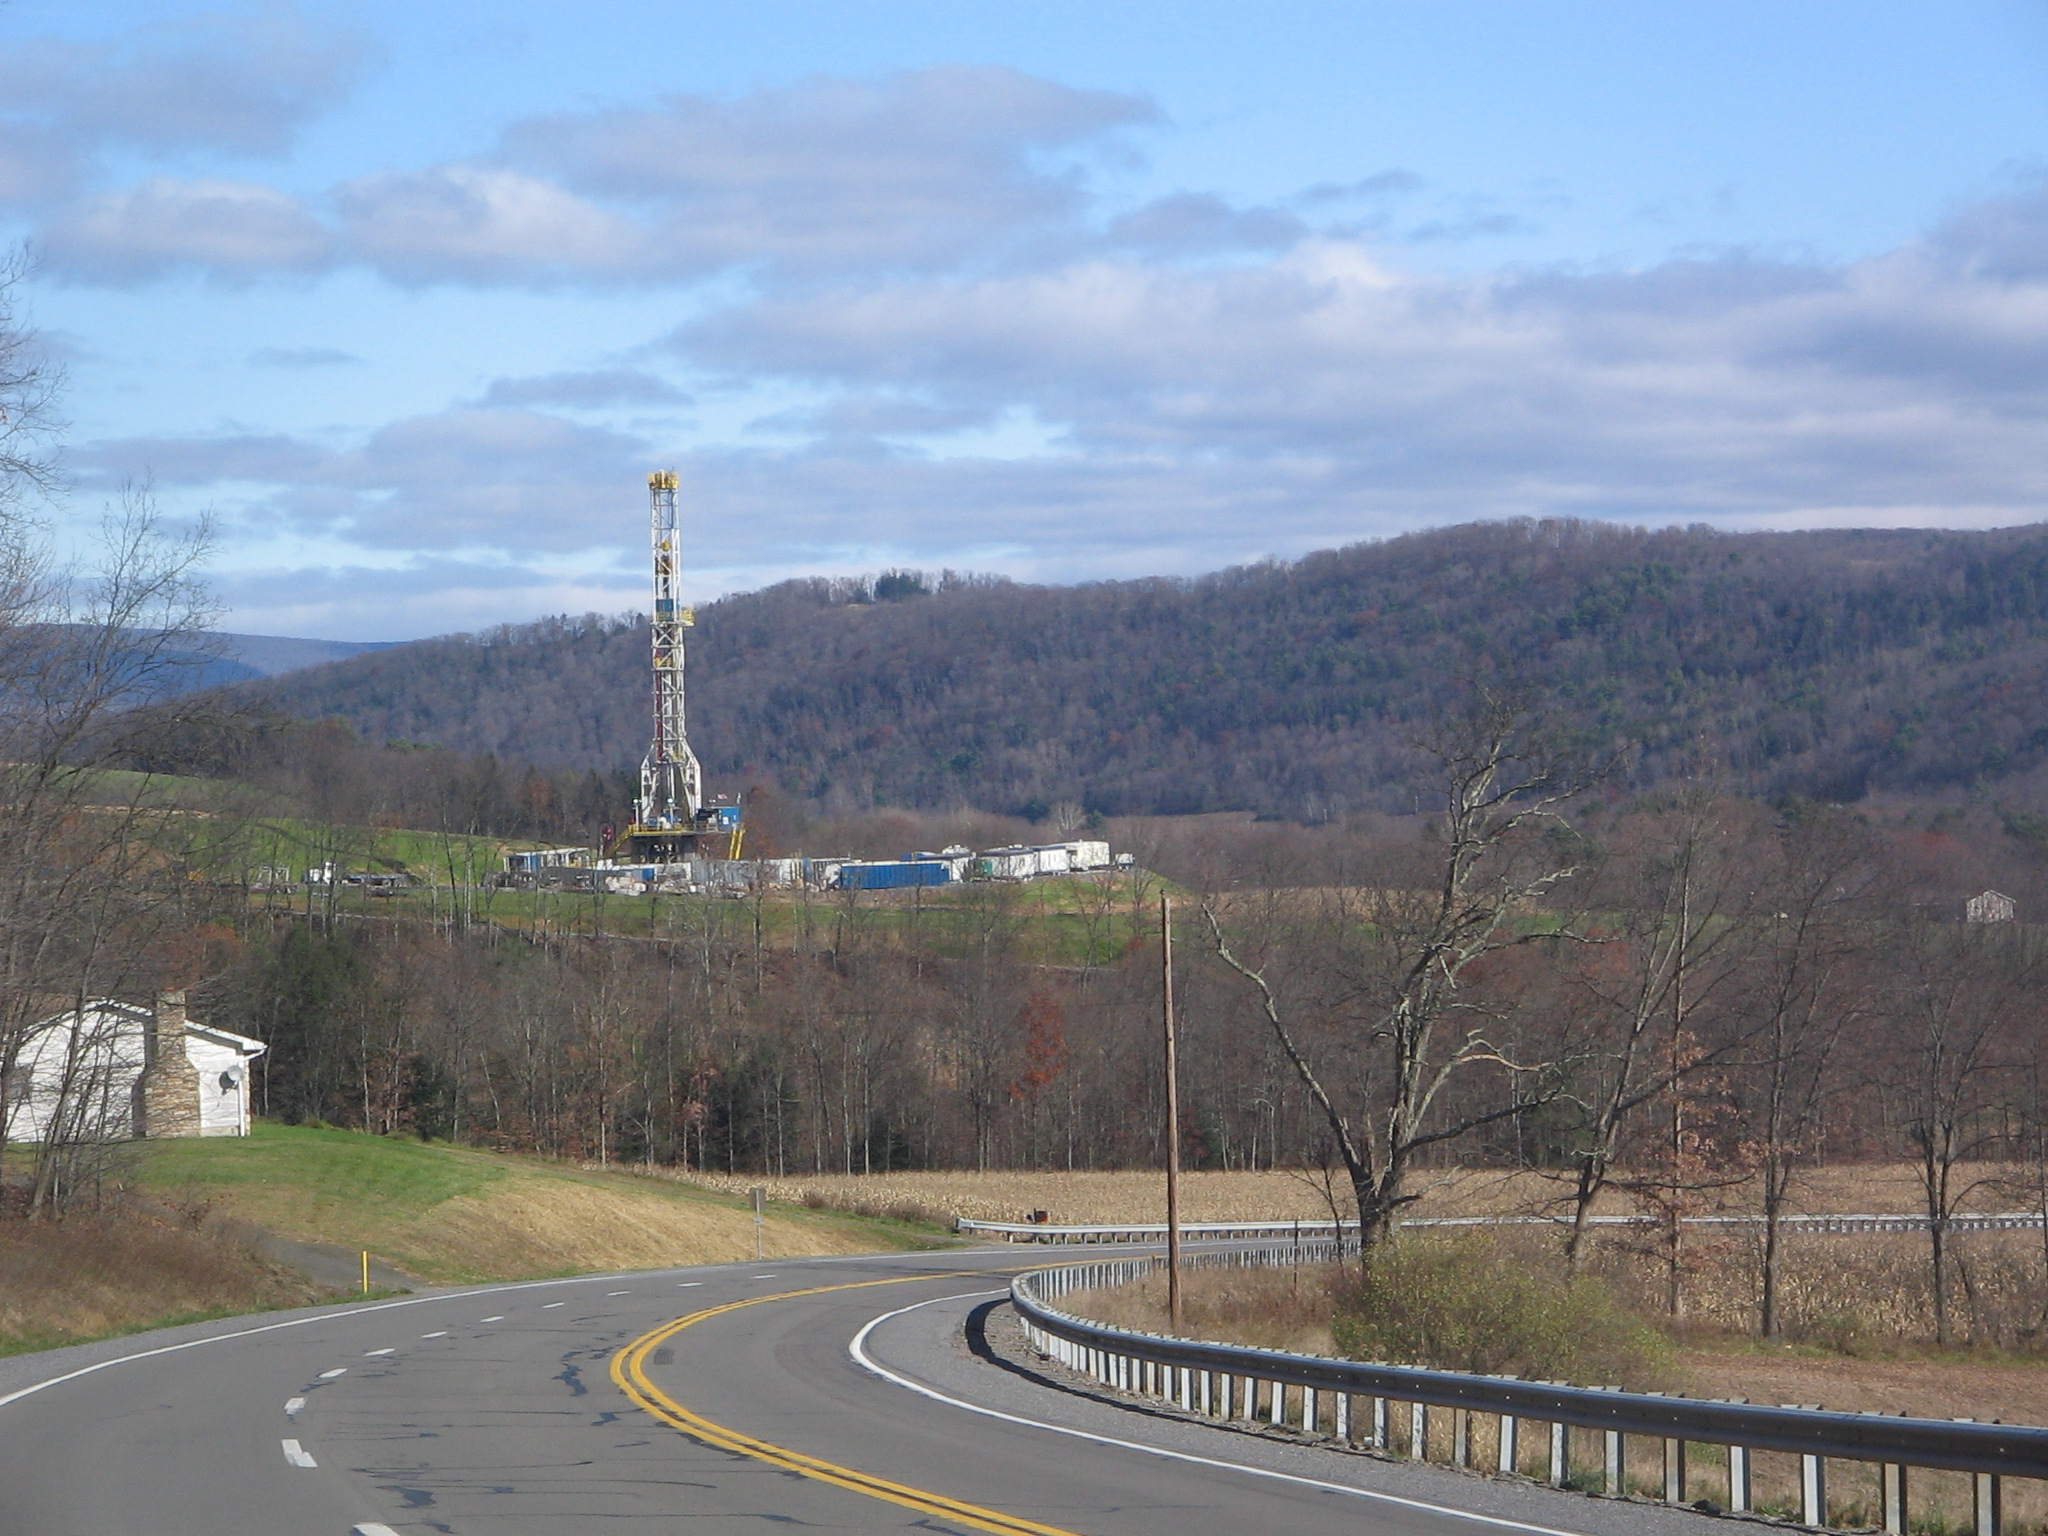 Tower for drilling horizontally into the Marcellus Shale Formation for natural gas in Pennsylvania, USA. (photo courtesy of Ruhrfisch/Wikimedia Commons)